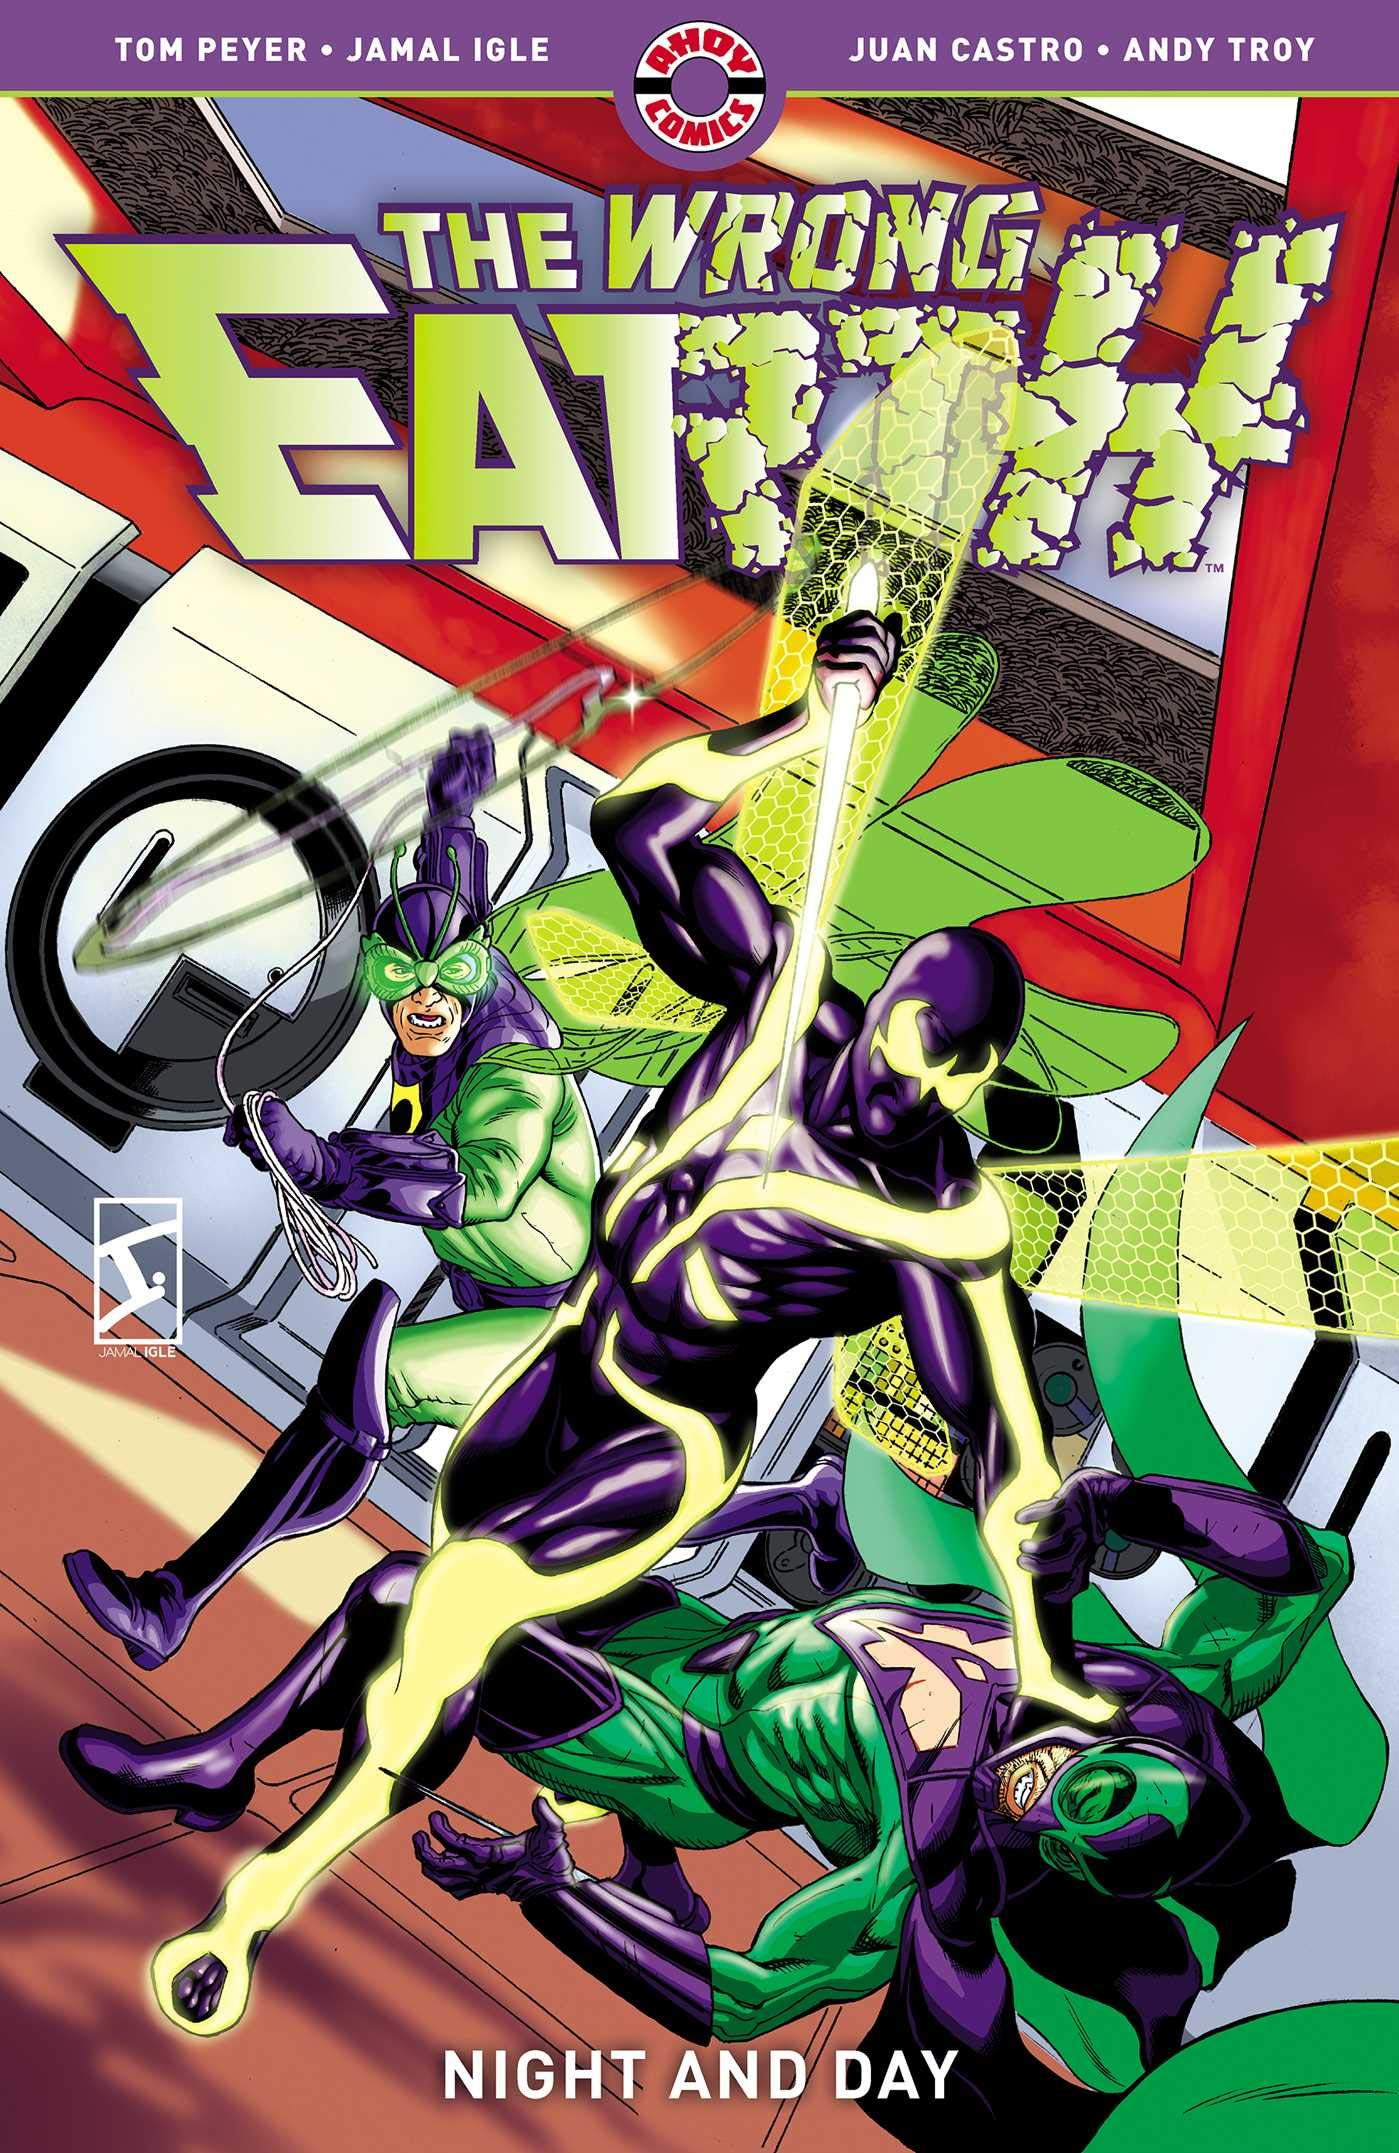 The Wrong Earth: Night and Day by Juan Castro, Tom Peyer